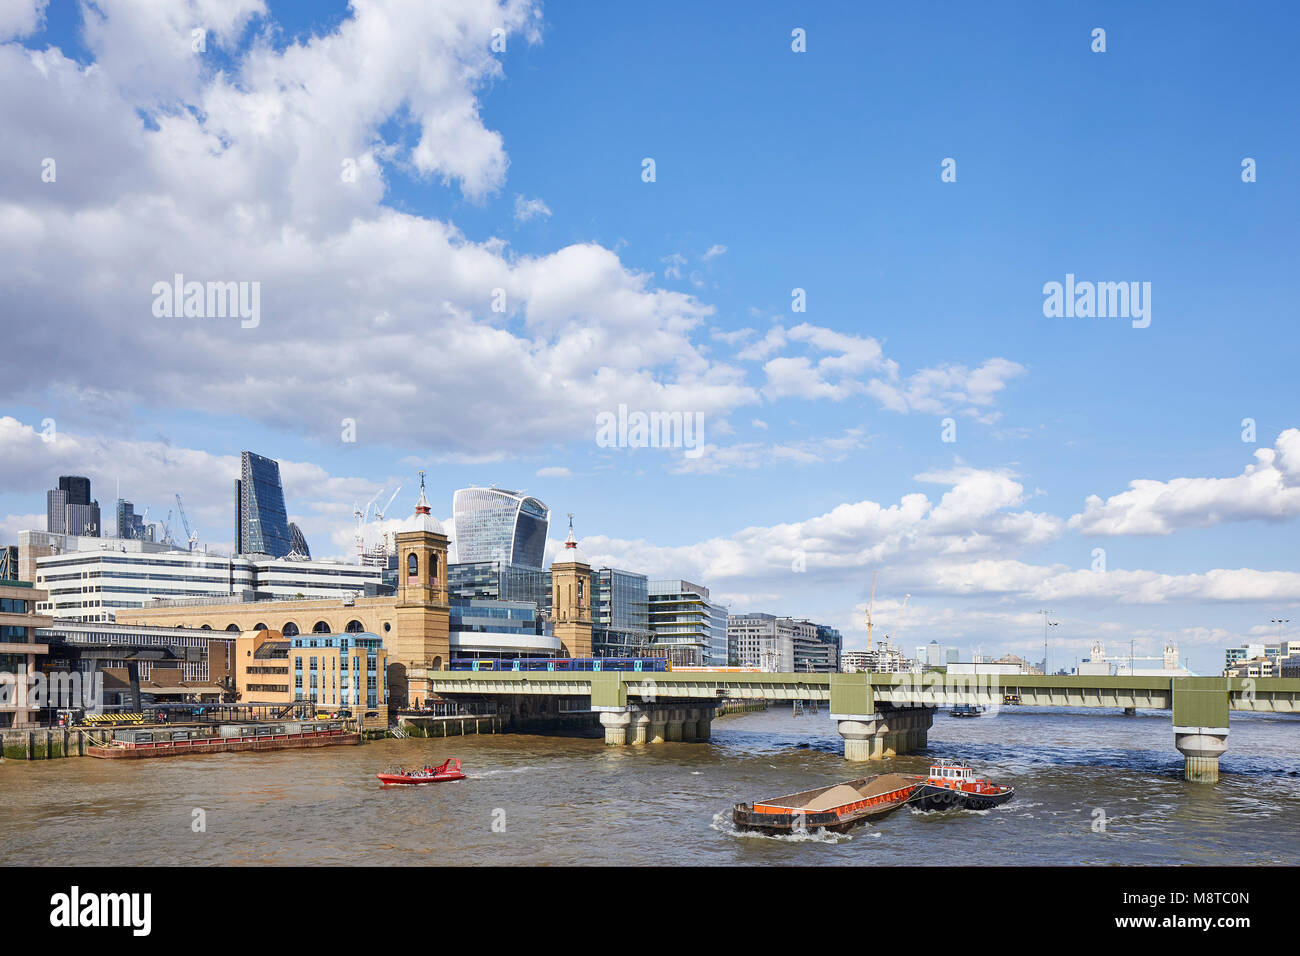 View of the River Thames with 20 Fenchurch Street and Cannon Street Railway Bridge. The River Building, London, Stock Photo